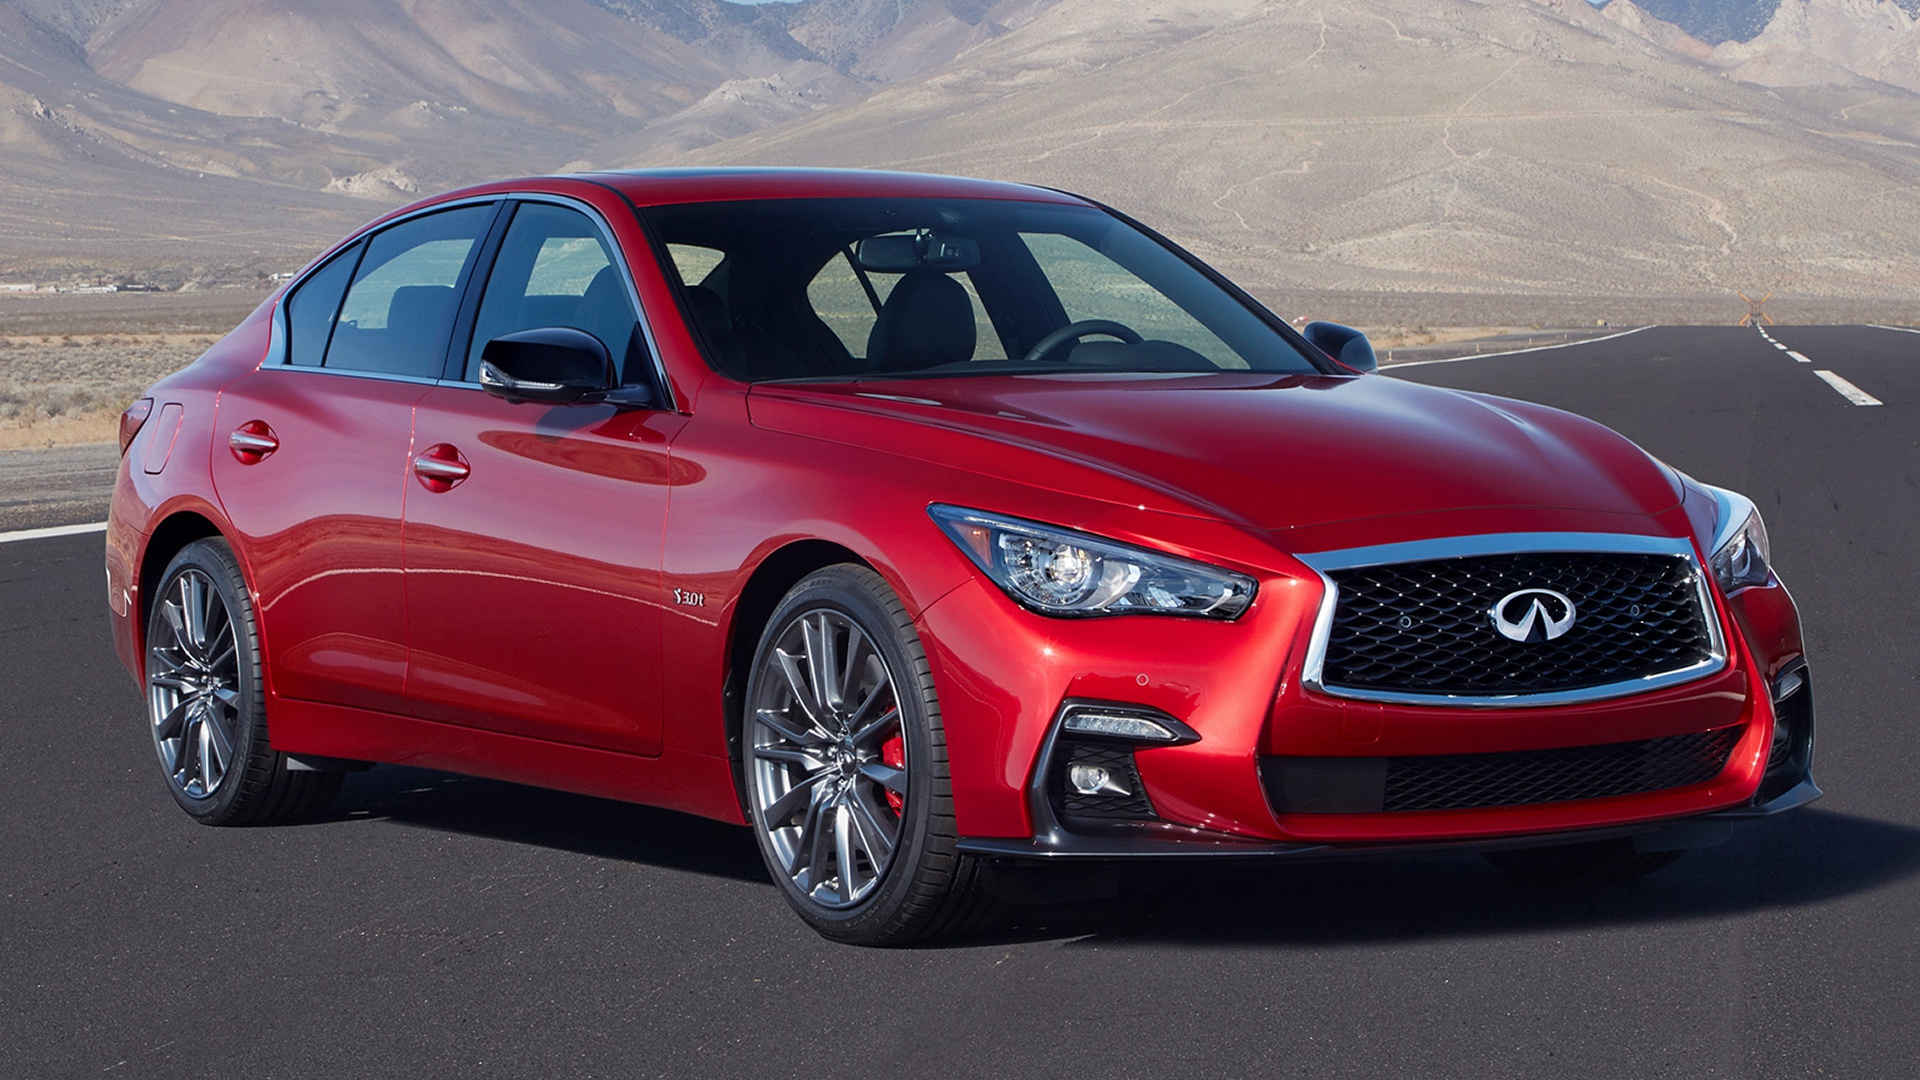 2018 Infiniti Q50 Sport Wallpapers And Hd Images Car Pixel